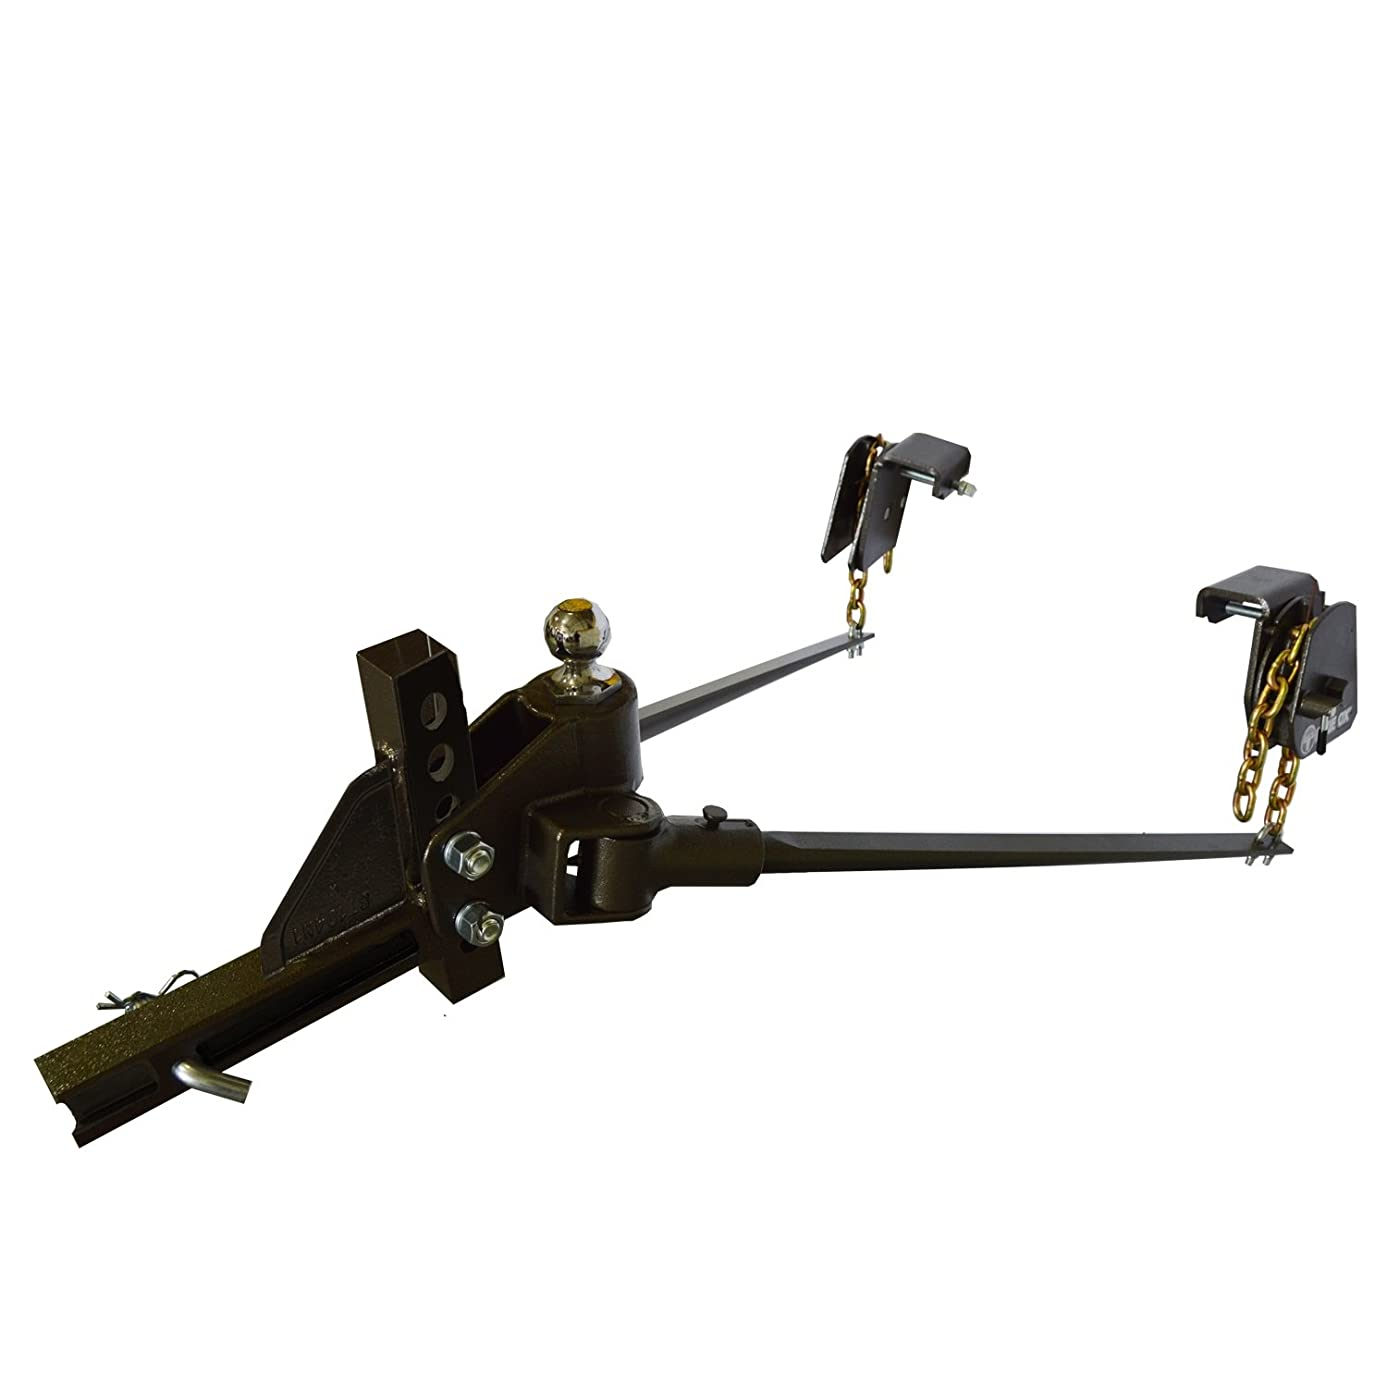 Blue Ox BXW1003 SWAYPRO Weight Distributing Hitch 1000lb Tongue Weight for Underslung Coupler with Clamp-On Latches